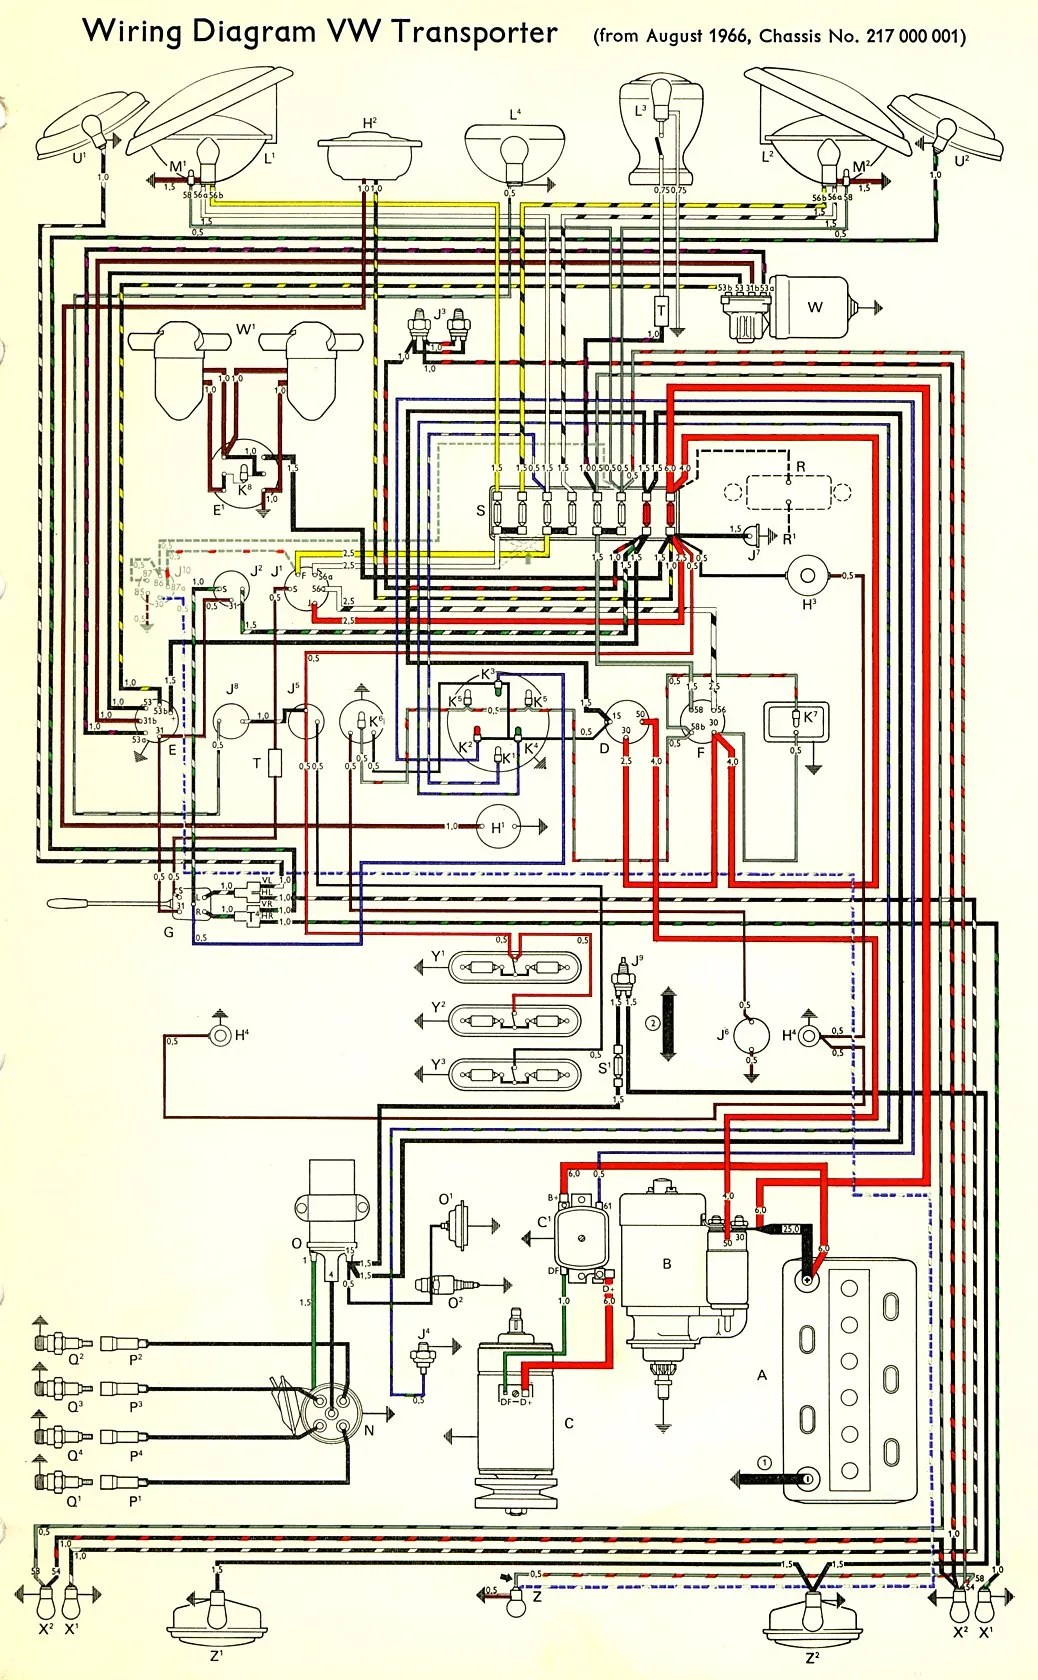 hight resolution of 1967 vw bus wiring diagram wiring diagram schemes vw fuse box diagram 1979 vw beetle fuse